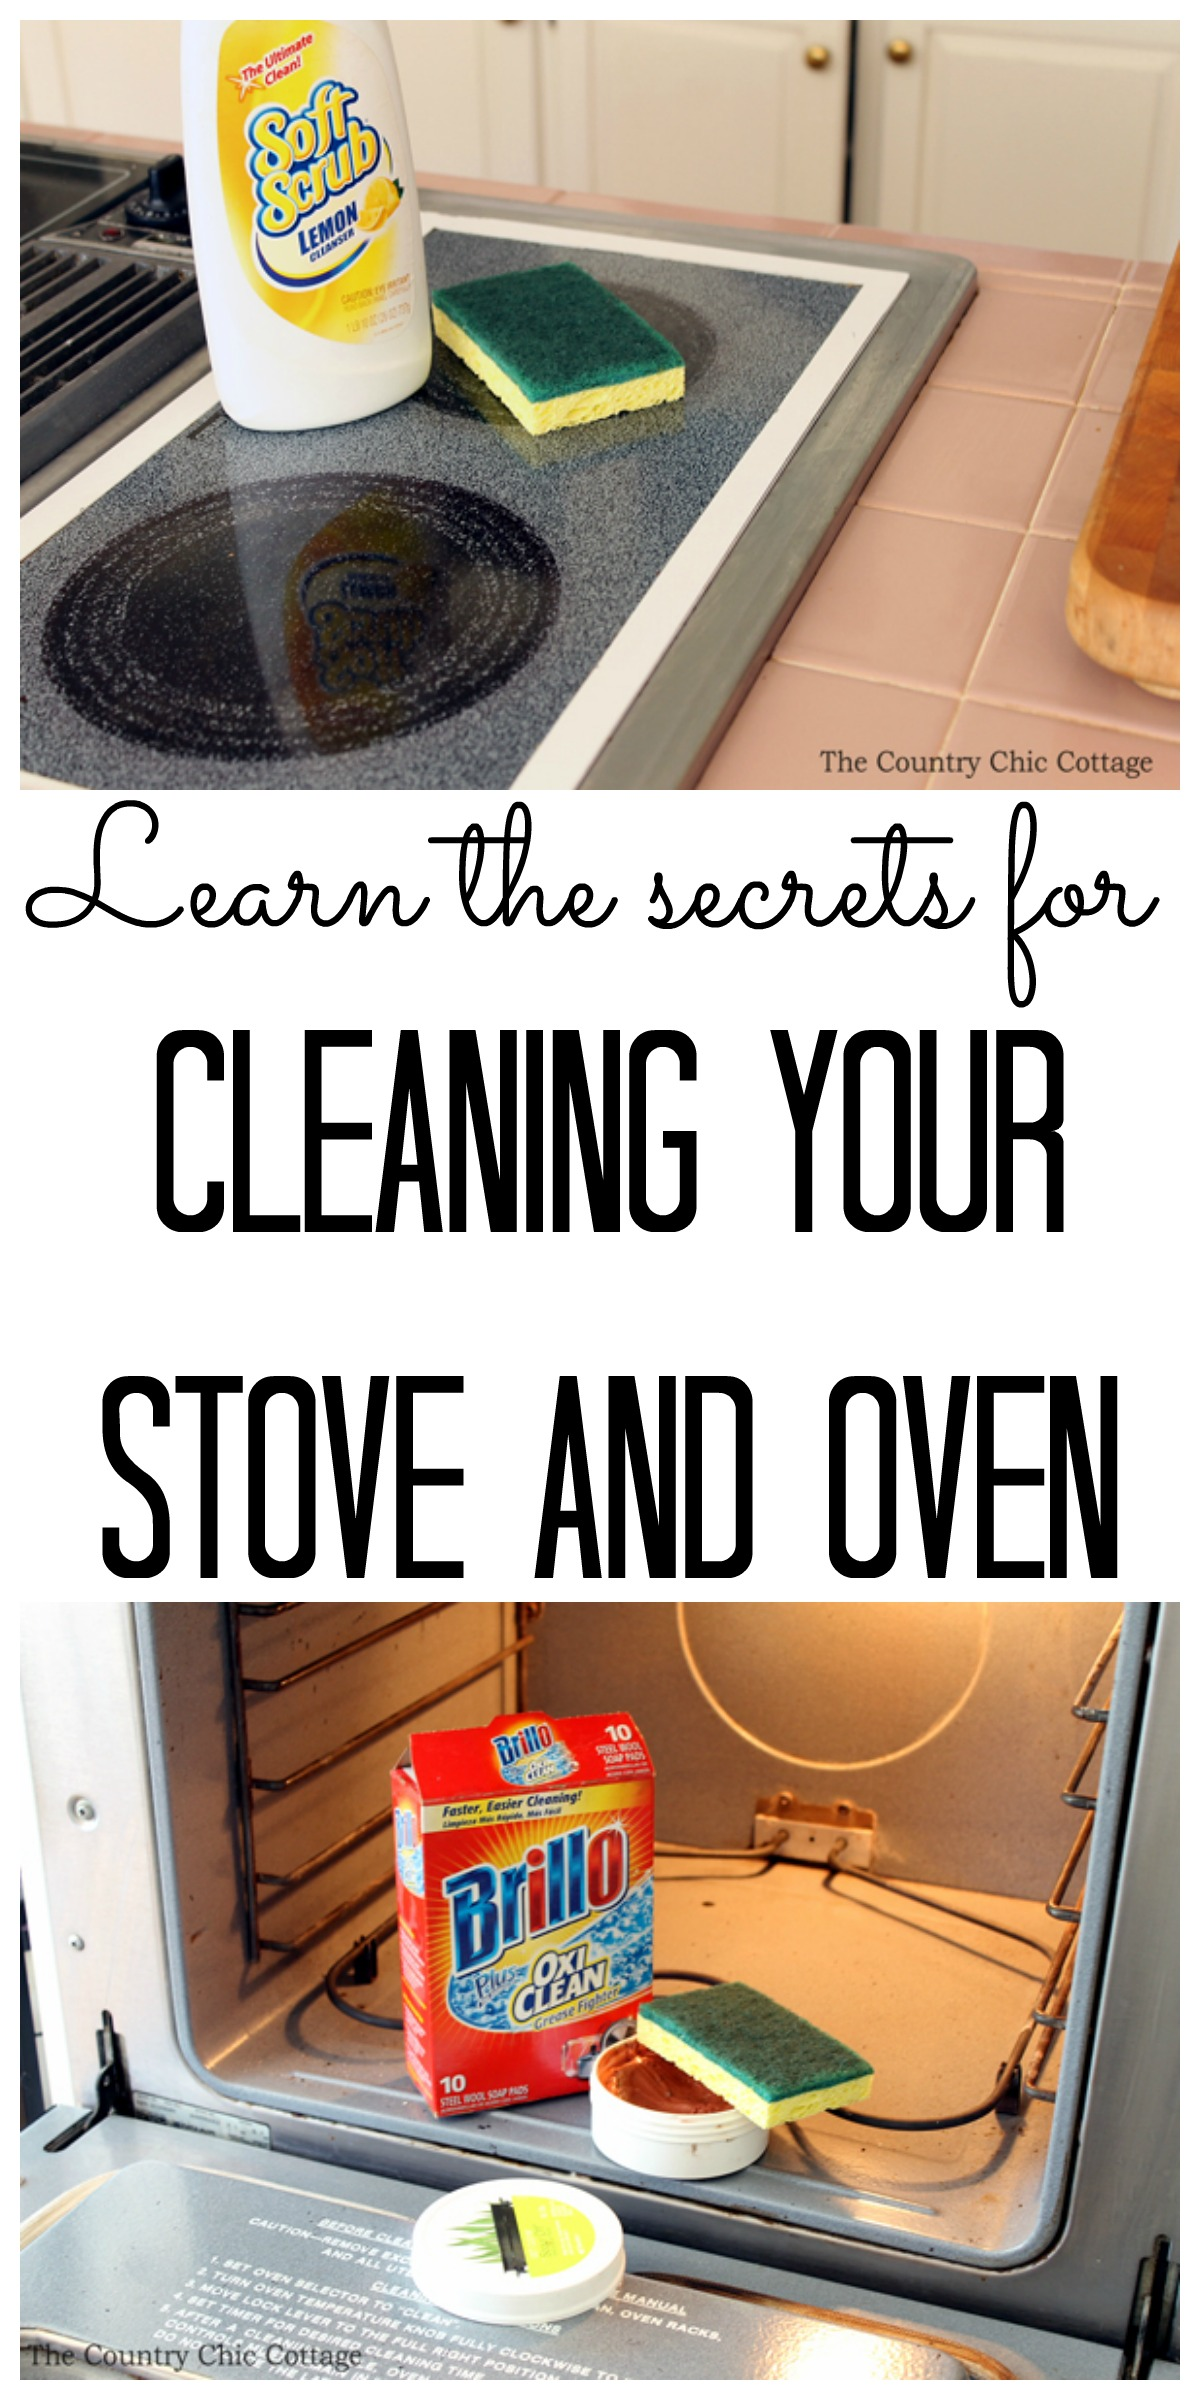 Learn the Secrets for Cleaning Your Stove and Oven from The Country Chic Cottage